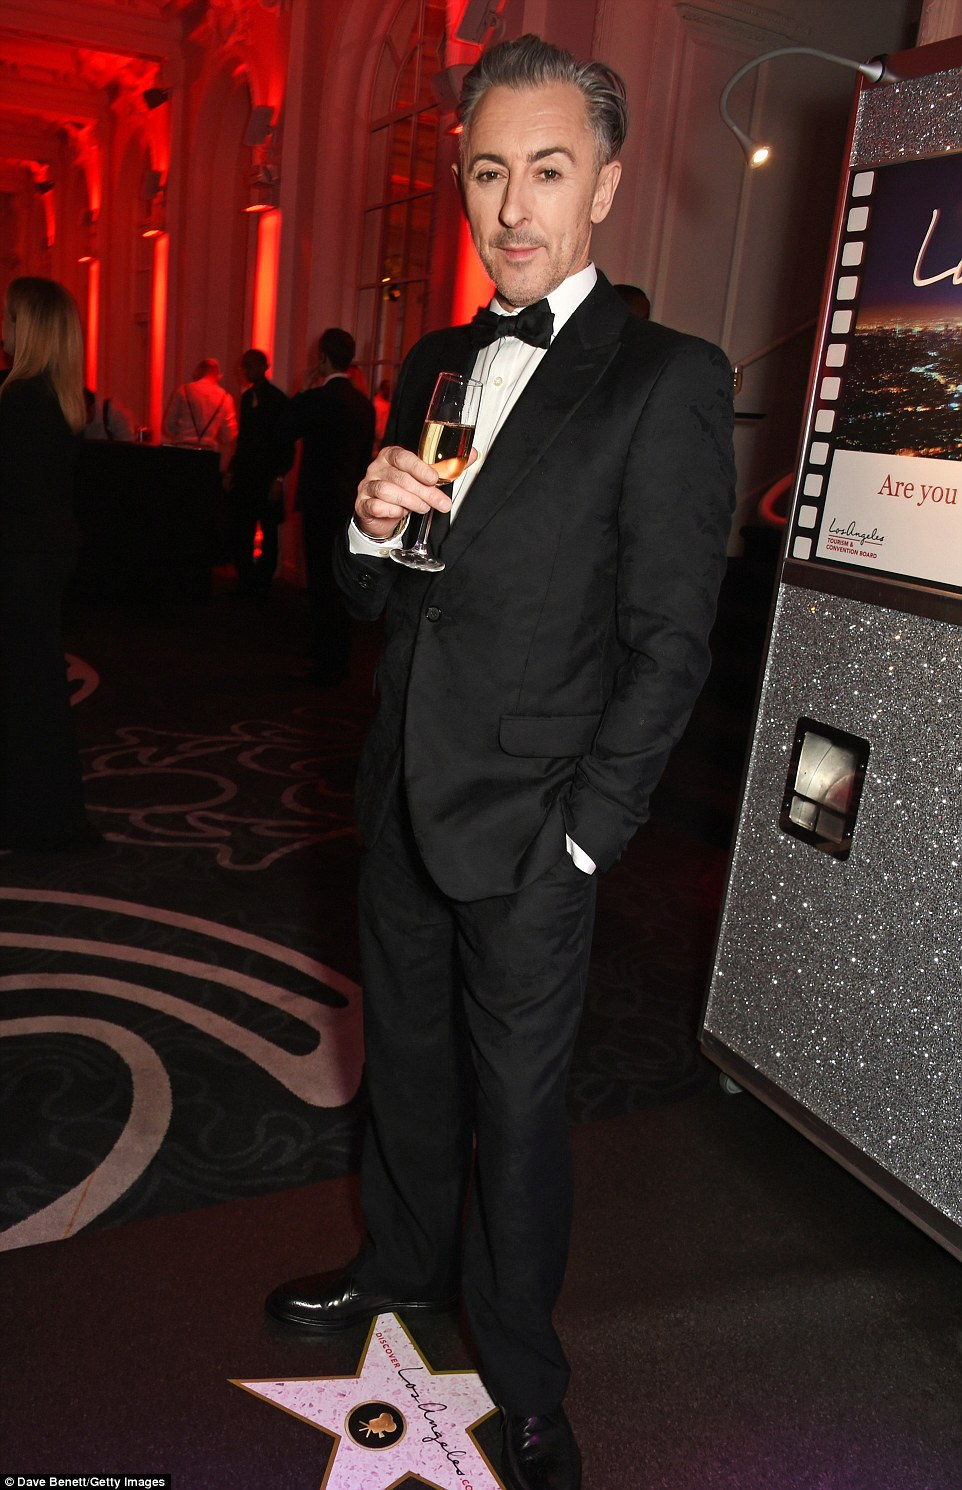 Slick: Leading the male arrivals was the show's debonair host Alan Cumming, who looked sharp in a tuxedo while showing off his salt and pepper hair, which was slicked into a chic hairstyle